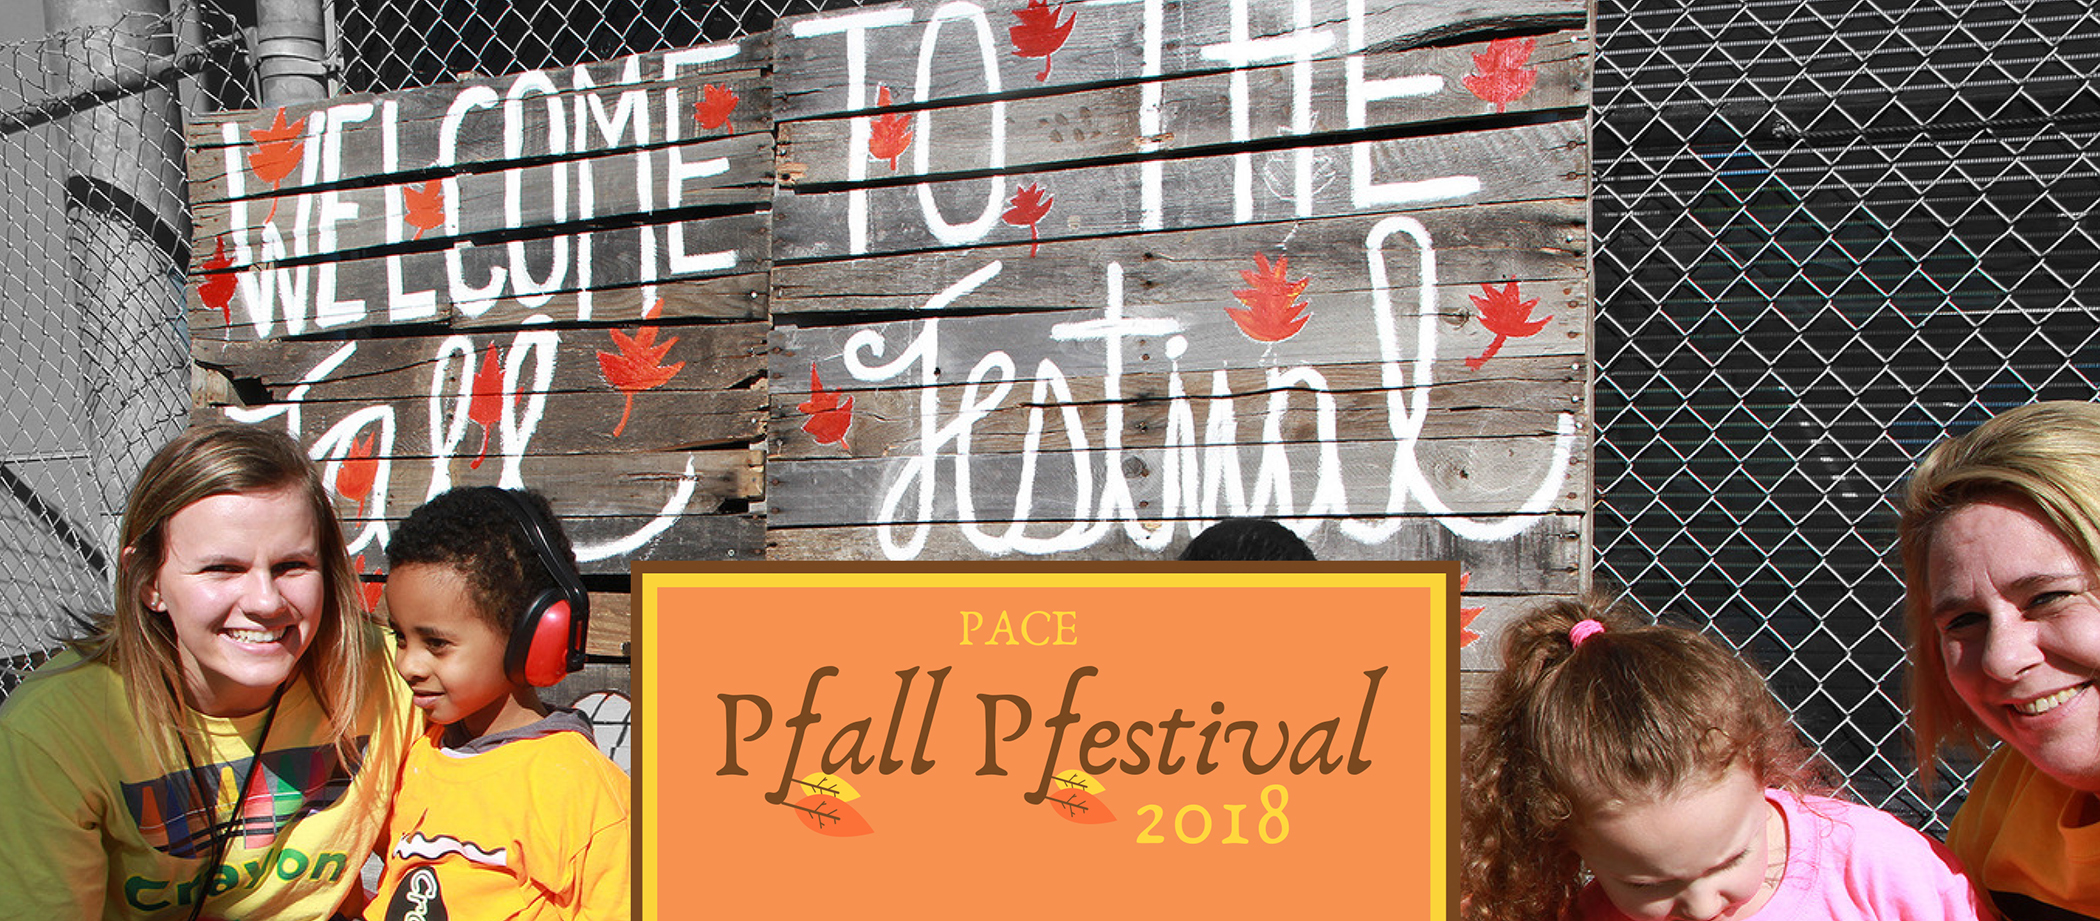 PACE Pfall Pfestival 2018